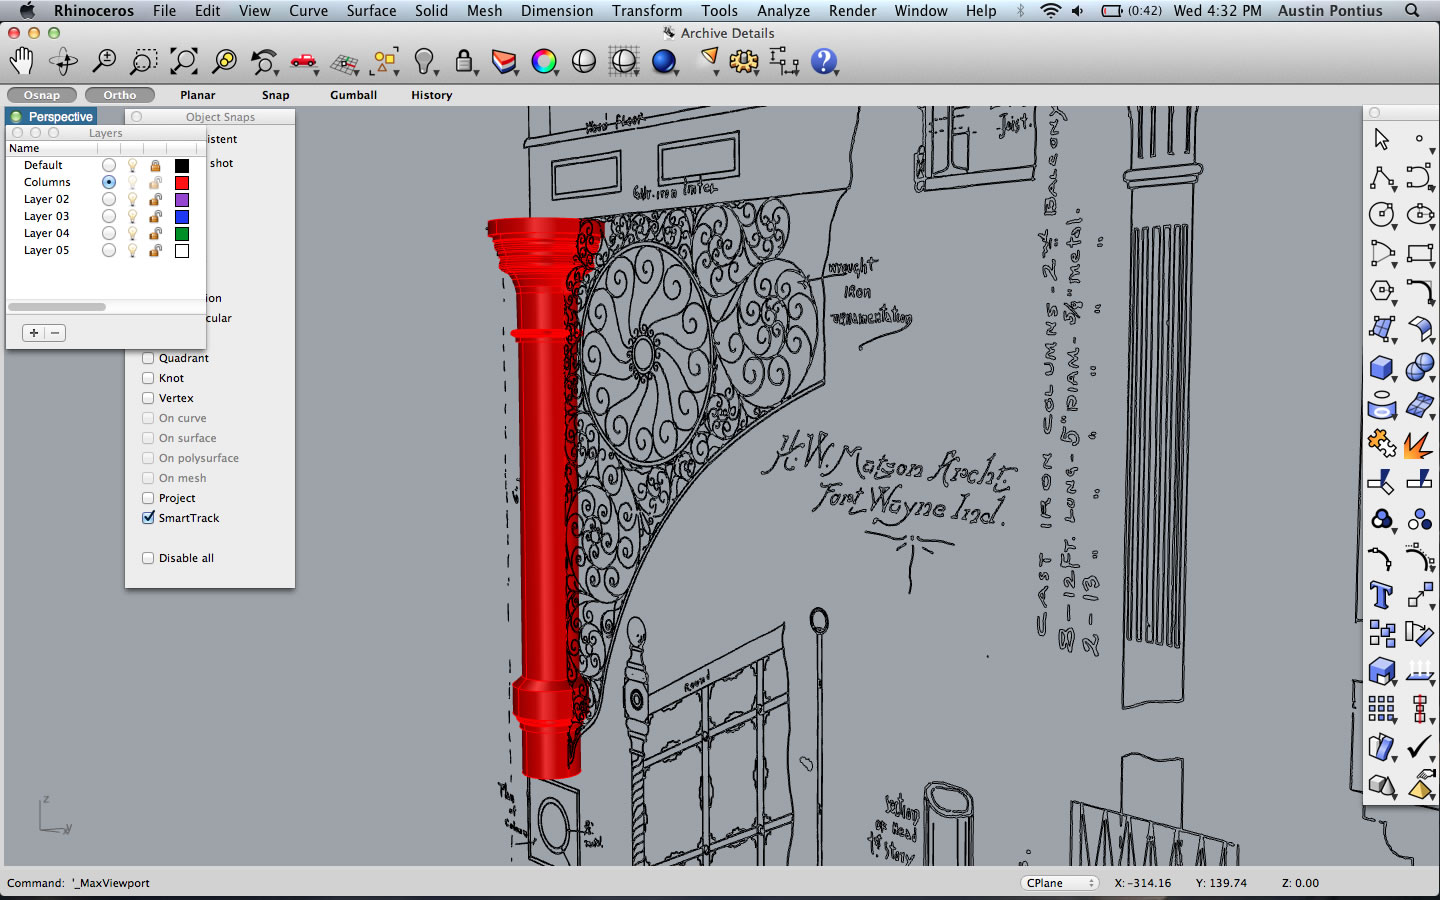 3D modeling process for column with wrought iron ornamentation and cast iron balcony railing, 2014. Indiana Architecture X 3D, Drawings + Documents Archive, Ball State University Libraries.